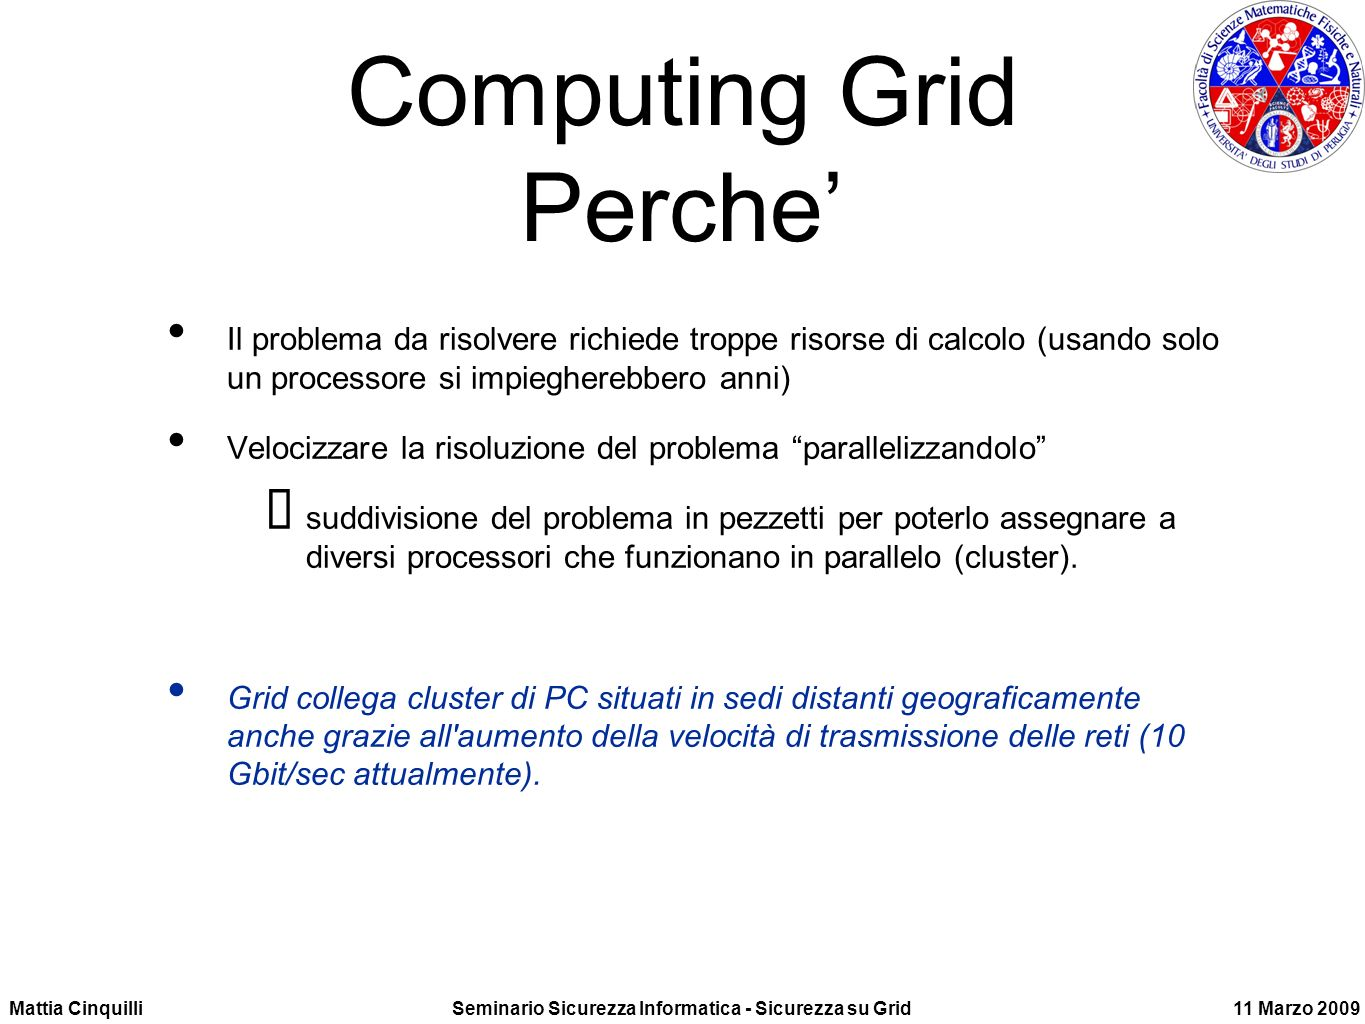 Computing Grid Perche'